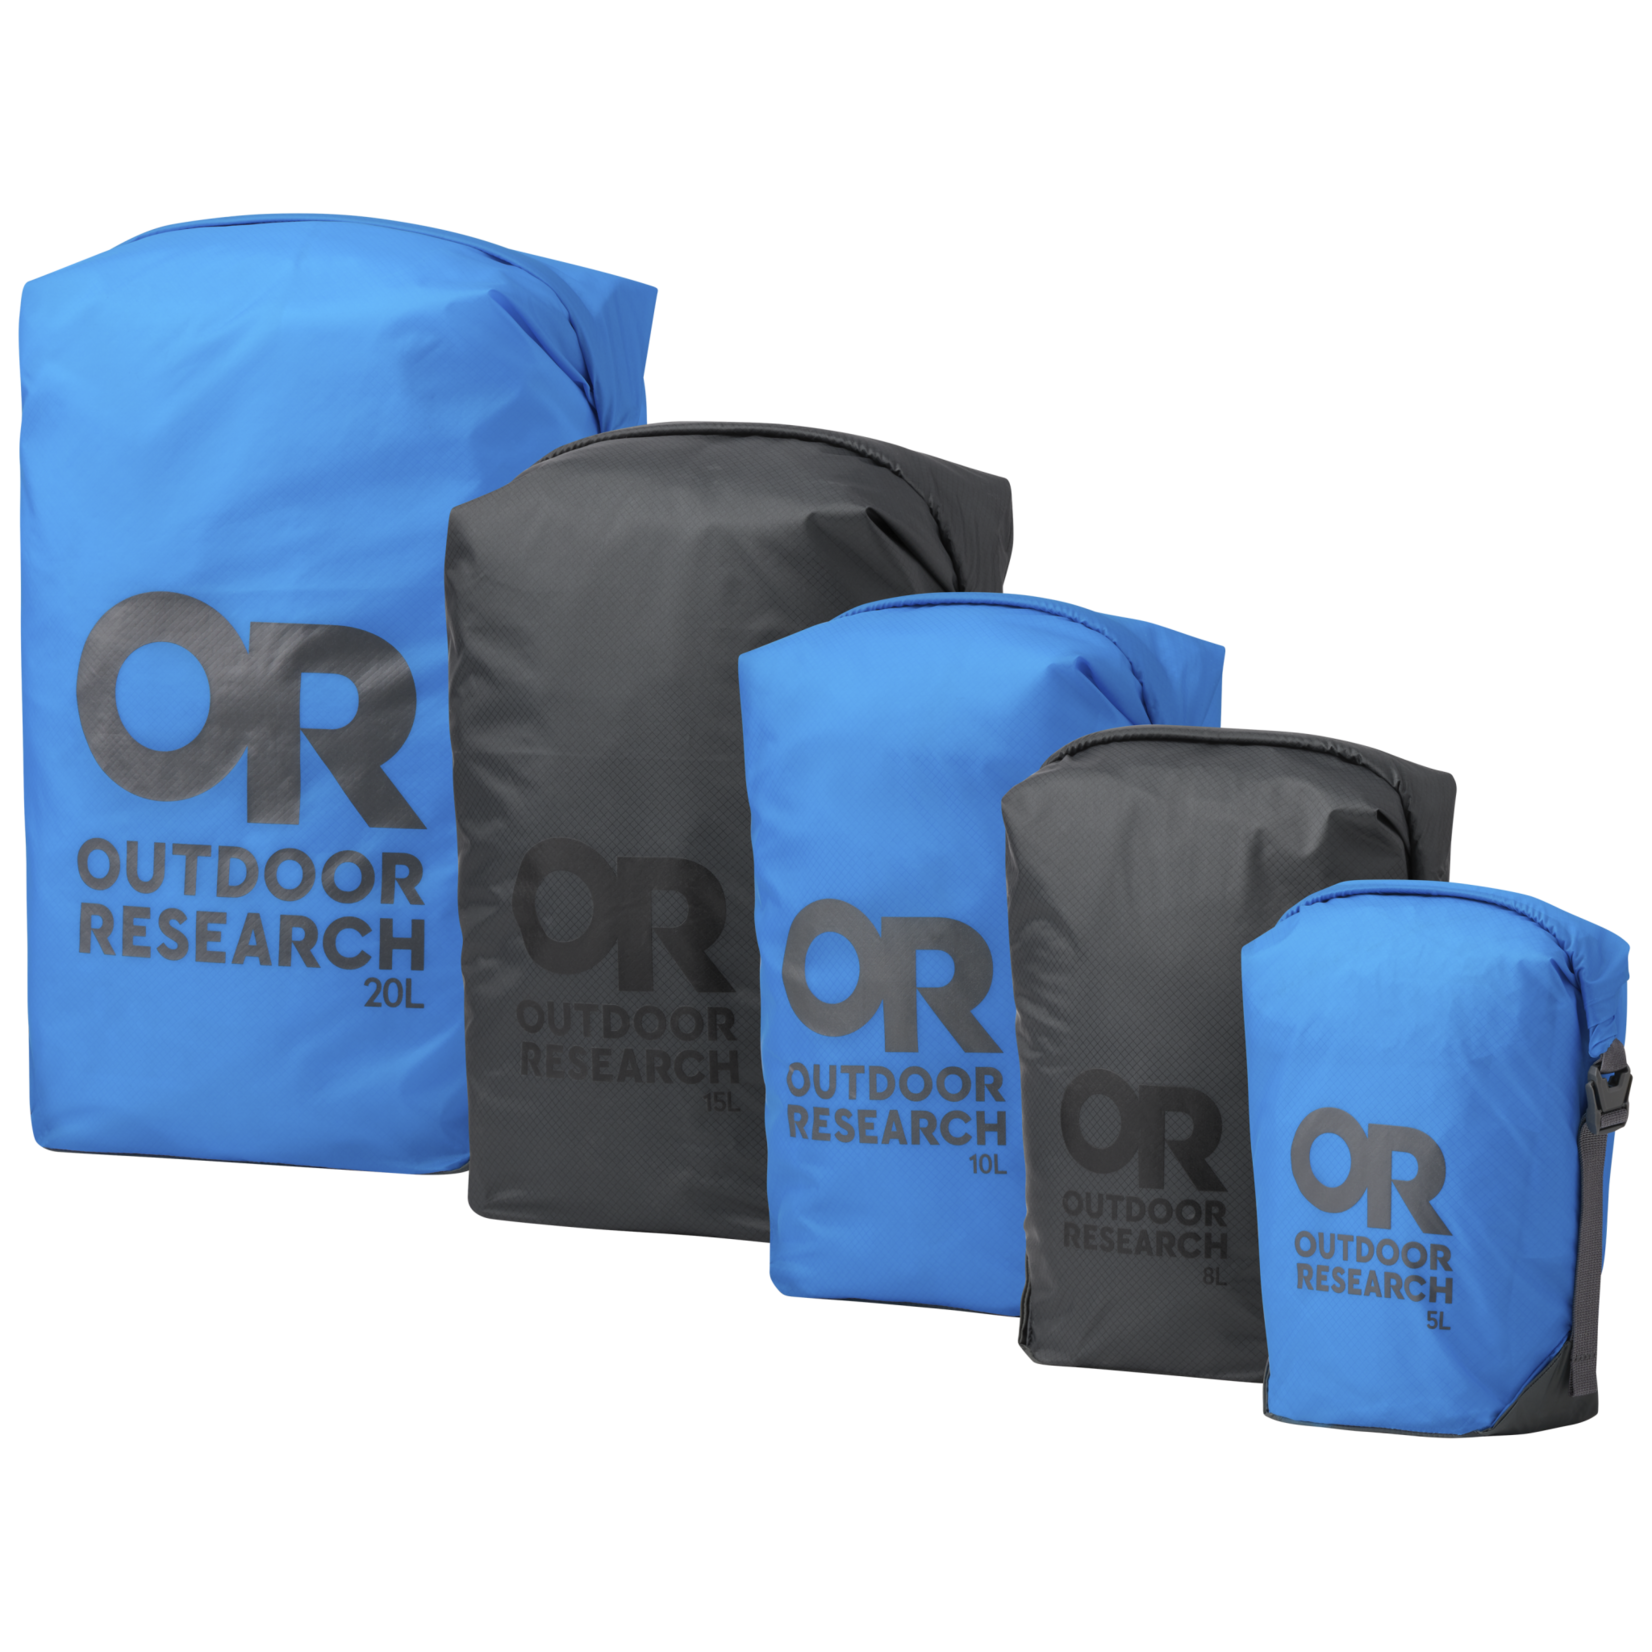 Outdoor Research Packout Compression Stuff Sac